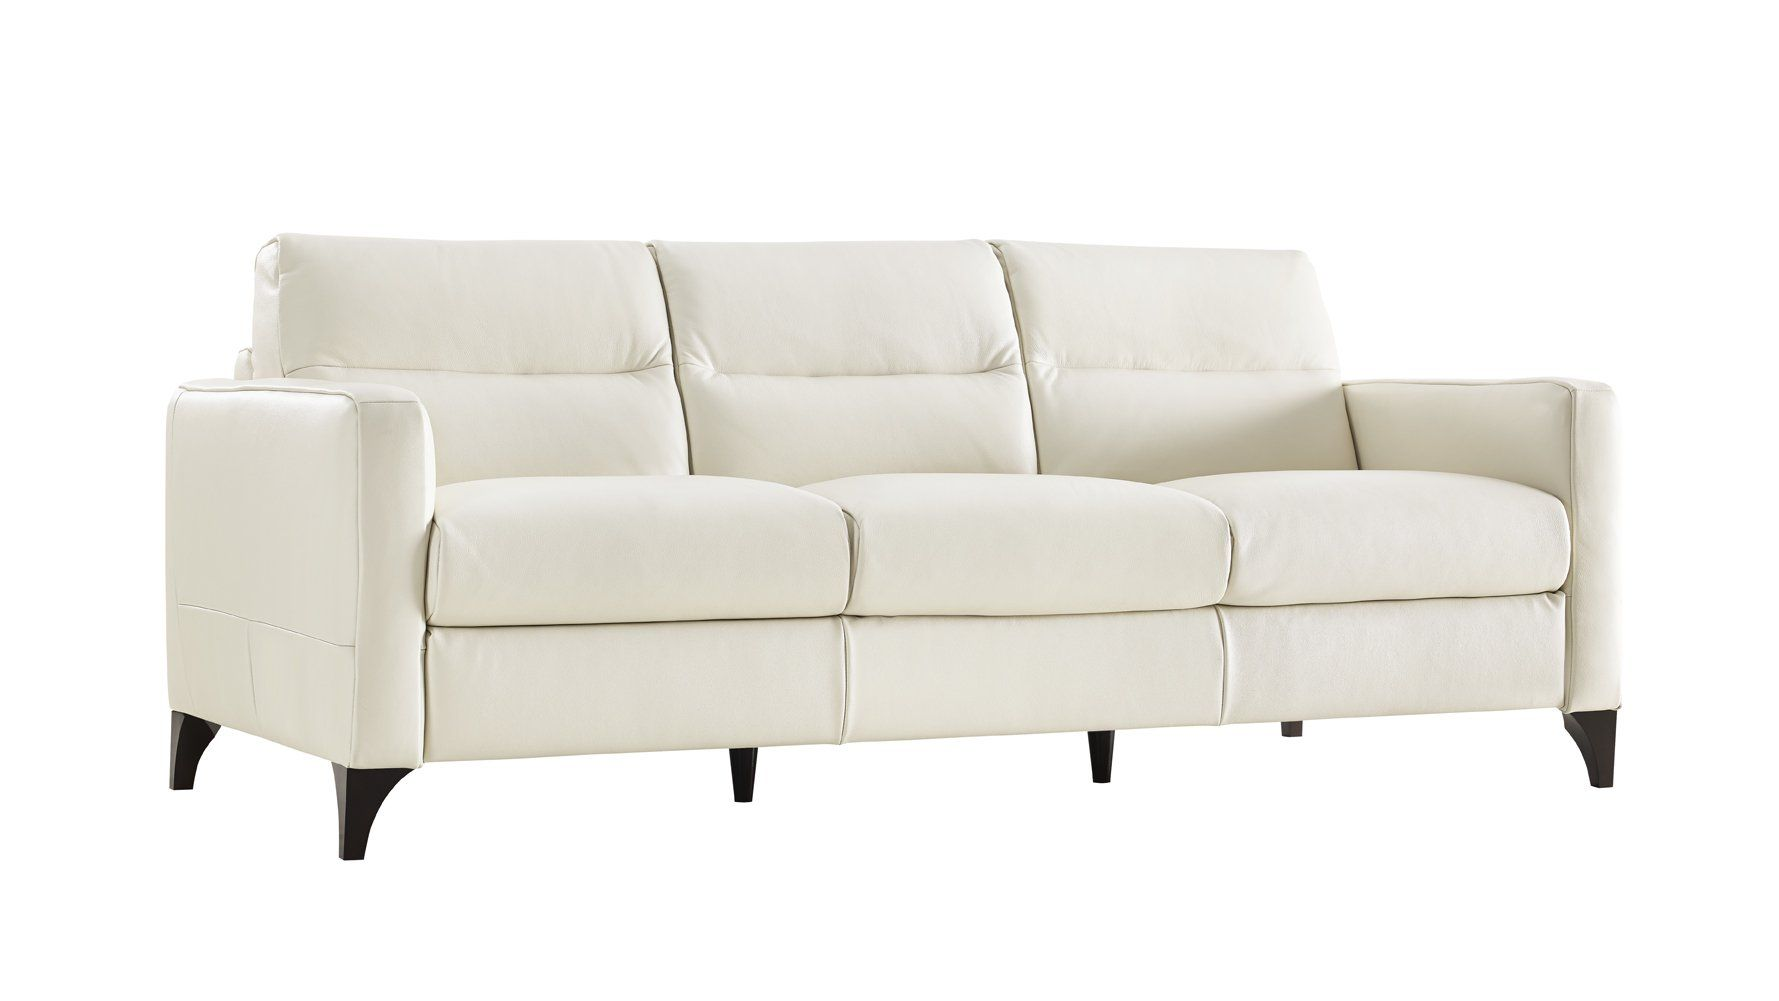 living motala white and furniture l simple shaped tufted interior vivawg to leather couch with cream remarkable size modern suede cheap black sofas convertible sectional sleeper throughout full on of sofa west go rooms recliner new blue chaise u beliani beige set room loveseat